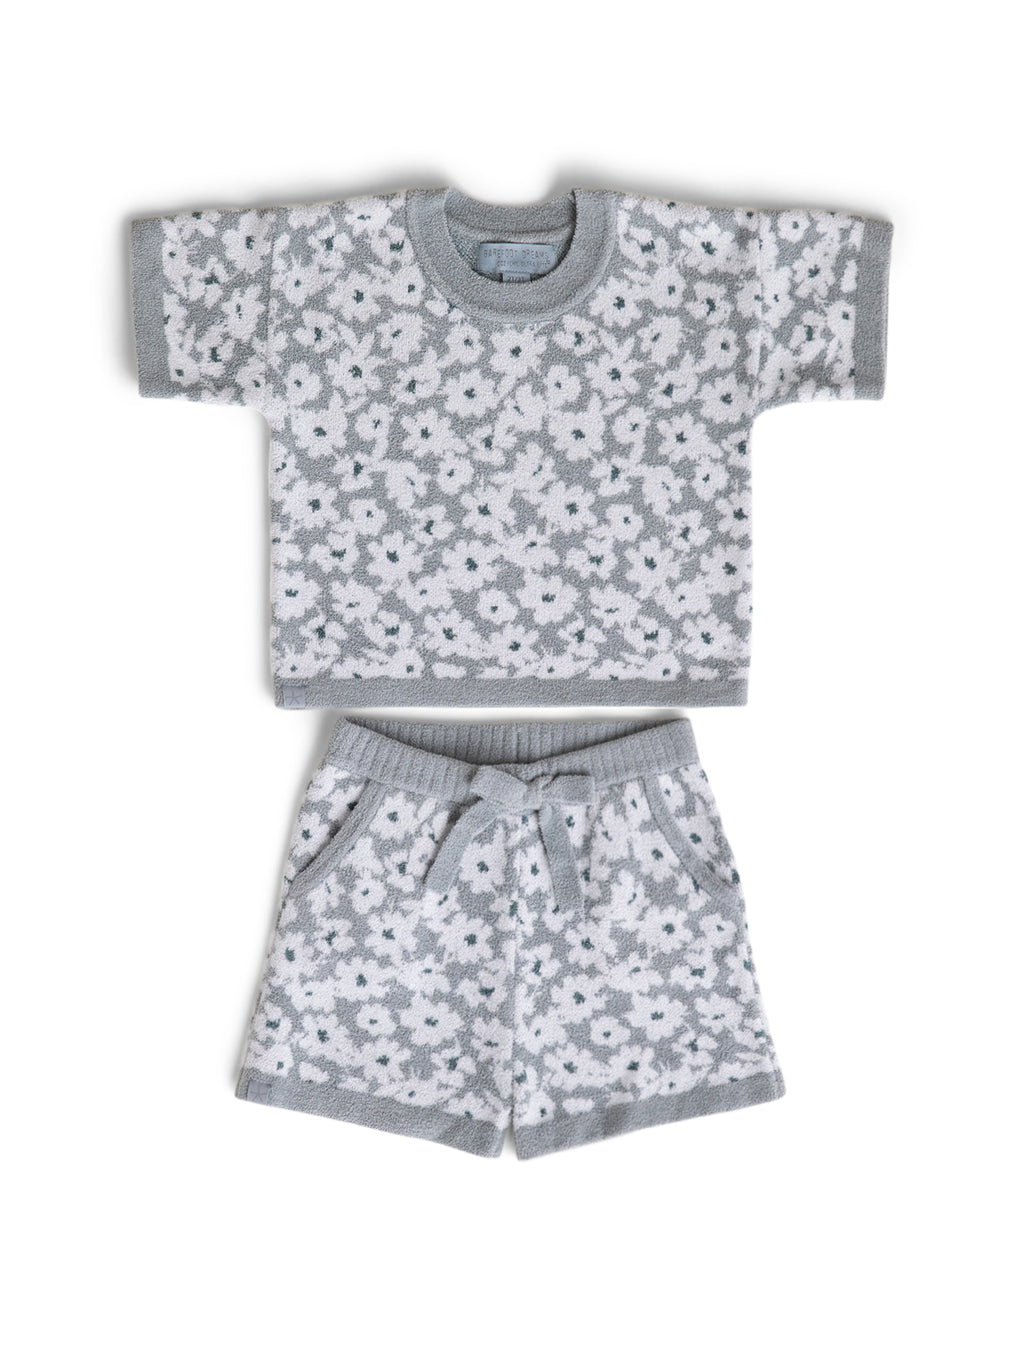 Barefoot Dreams CozyChic Ultra Lite Toddler Short Set - Waterfall Daffodil